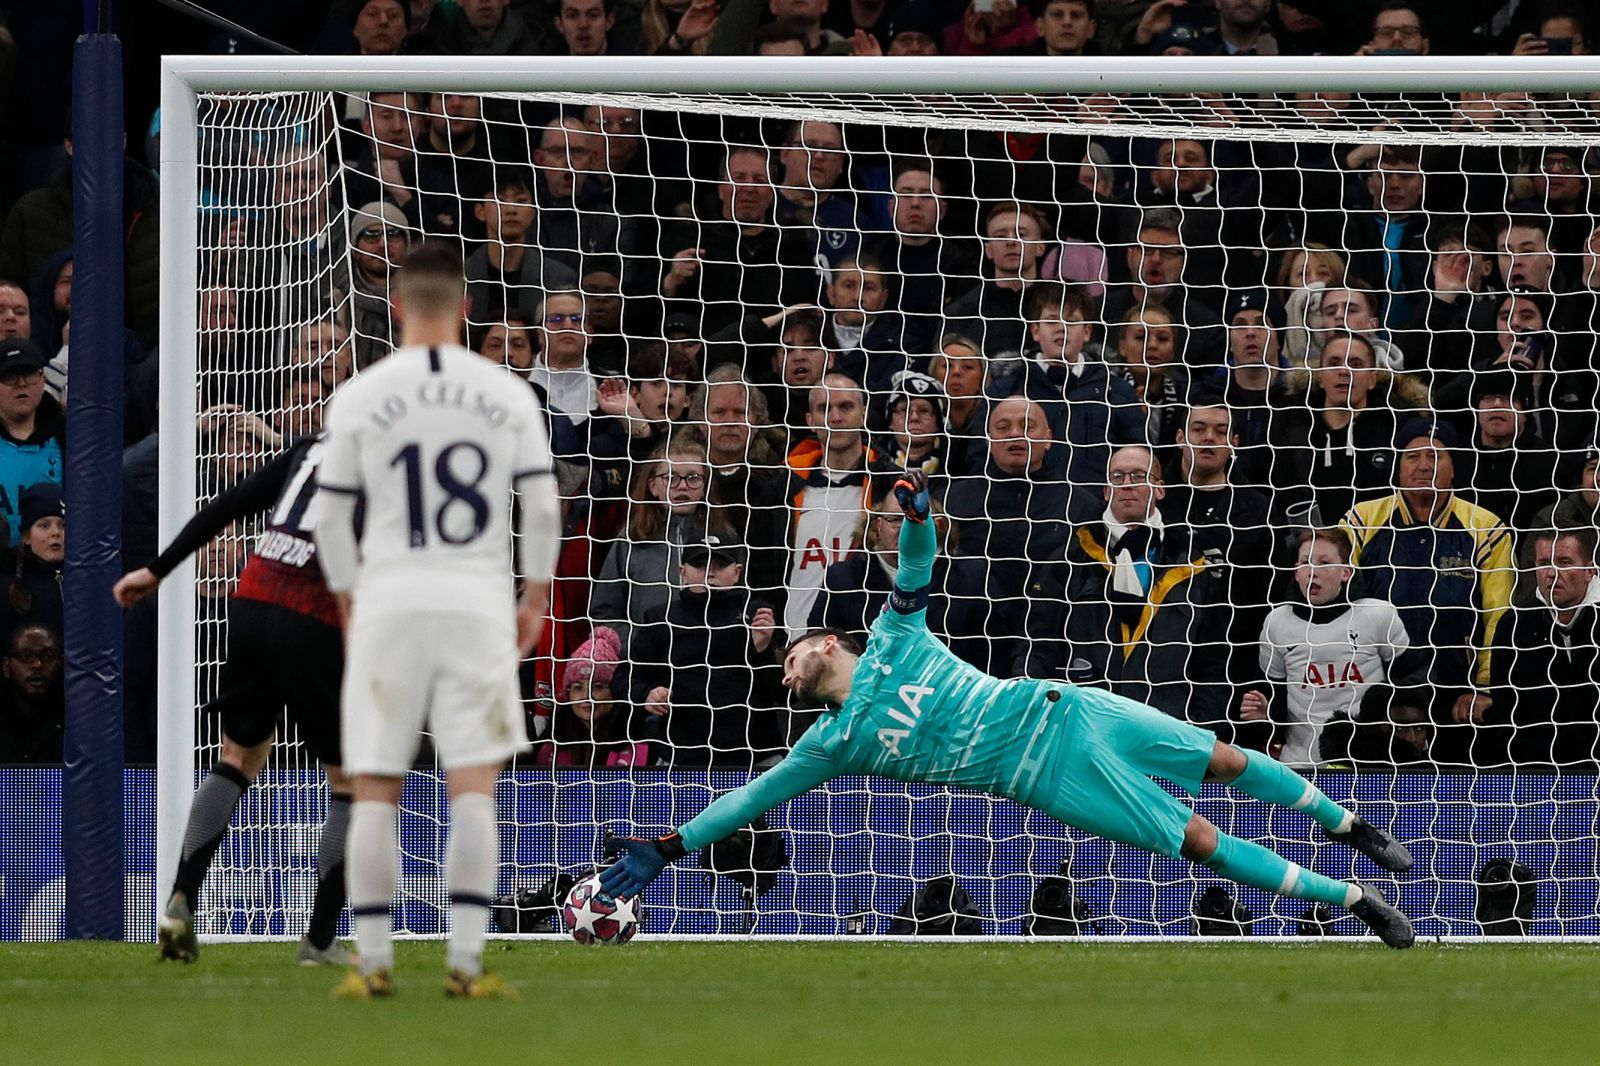 Late surge not enough for Tottenham, who lose 1-0 to RB Leipzig